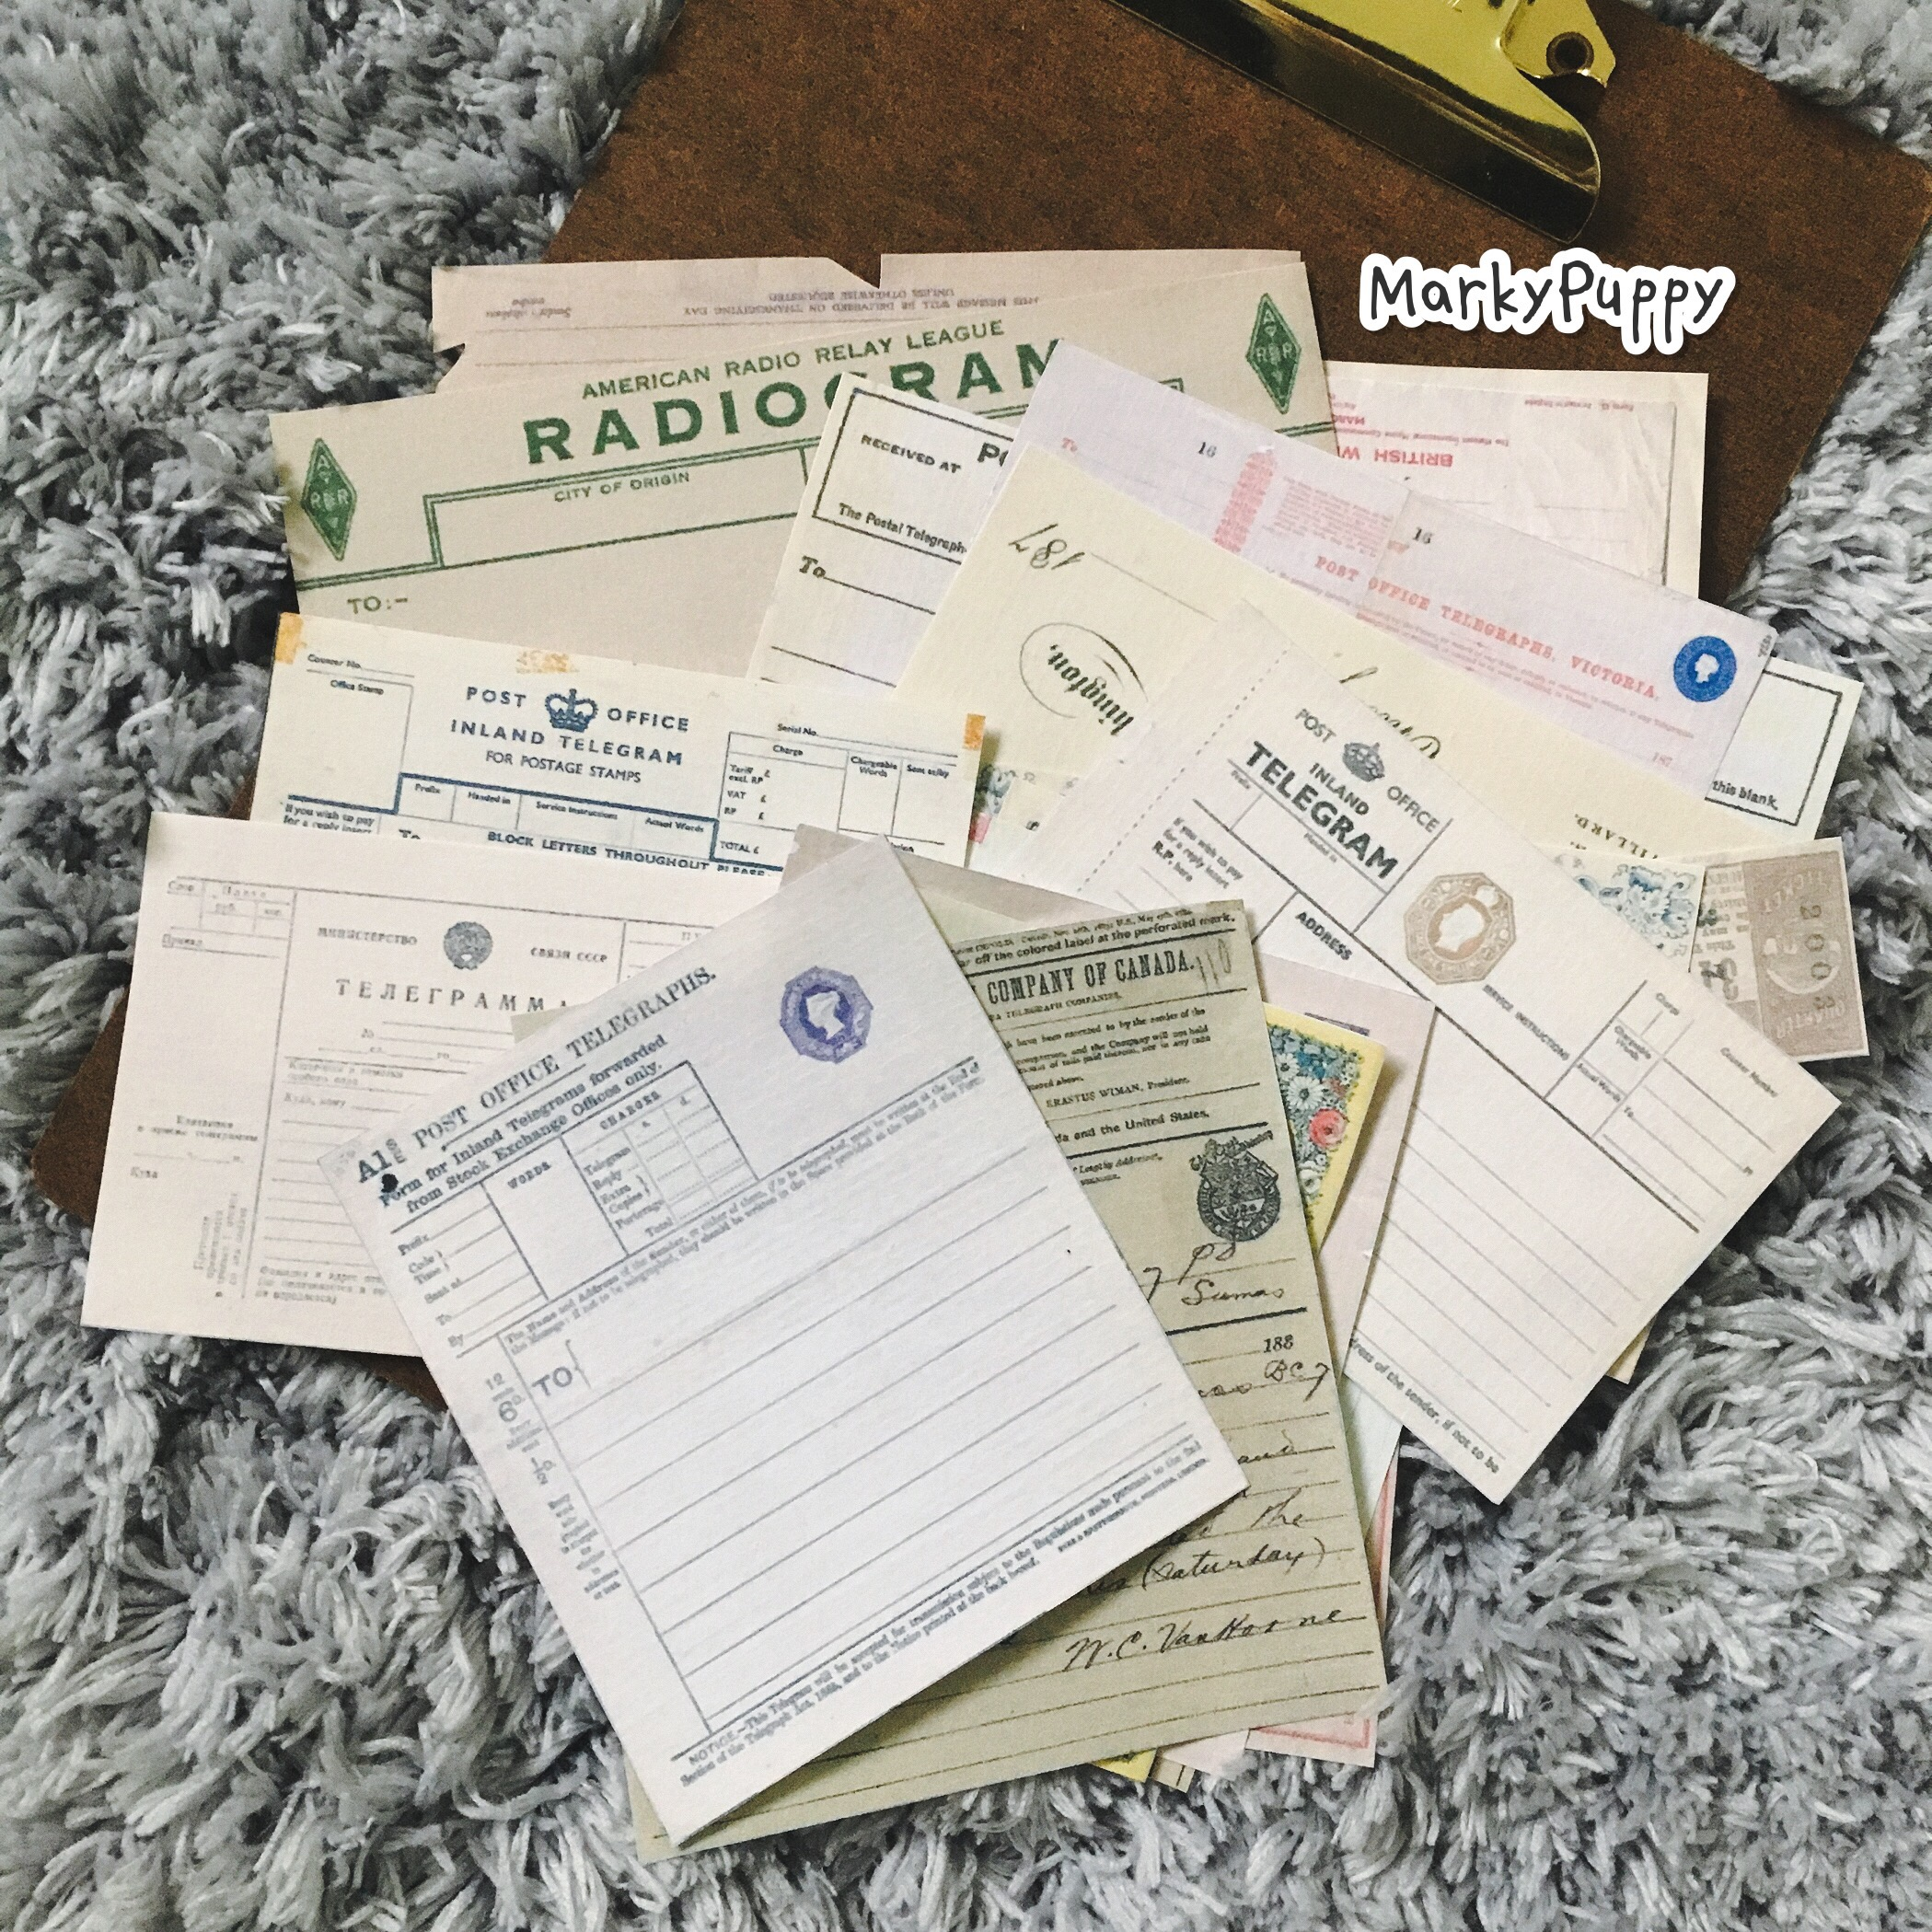 20 PCS\SET Vintage Bill\Old Receipts\Retro Telegrams For Daily Planning Background Design Decoration Material Junk Journal Paper